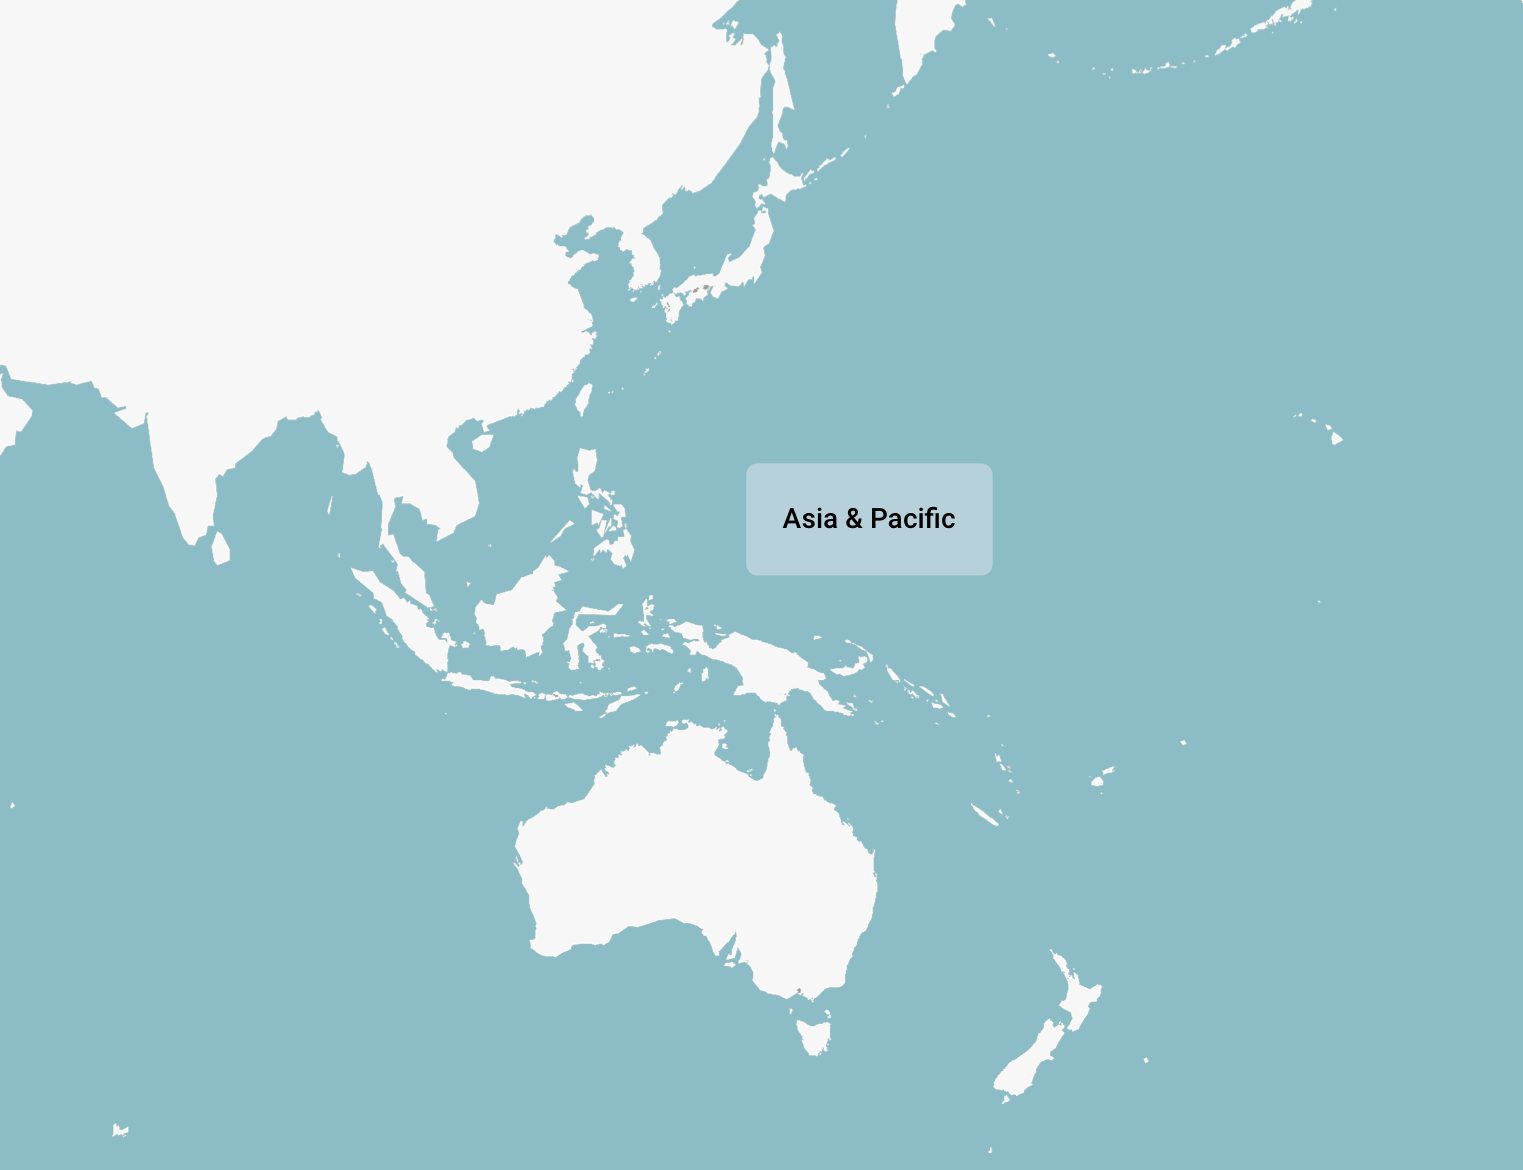 A blank map showing Asia Pacific region, including Australia and New Zealand